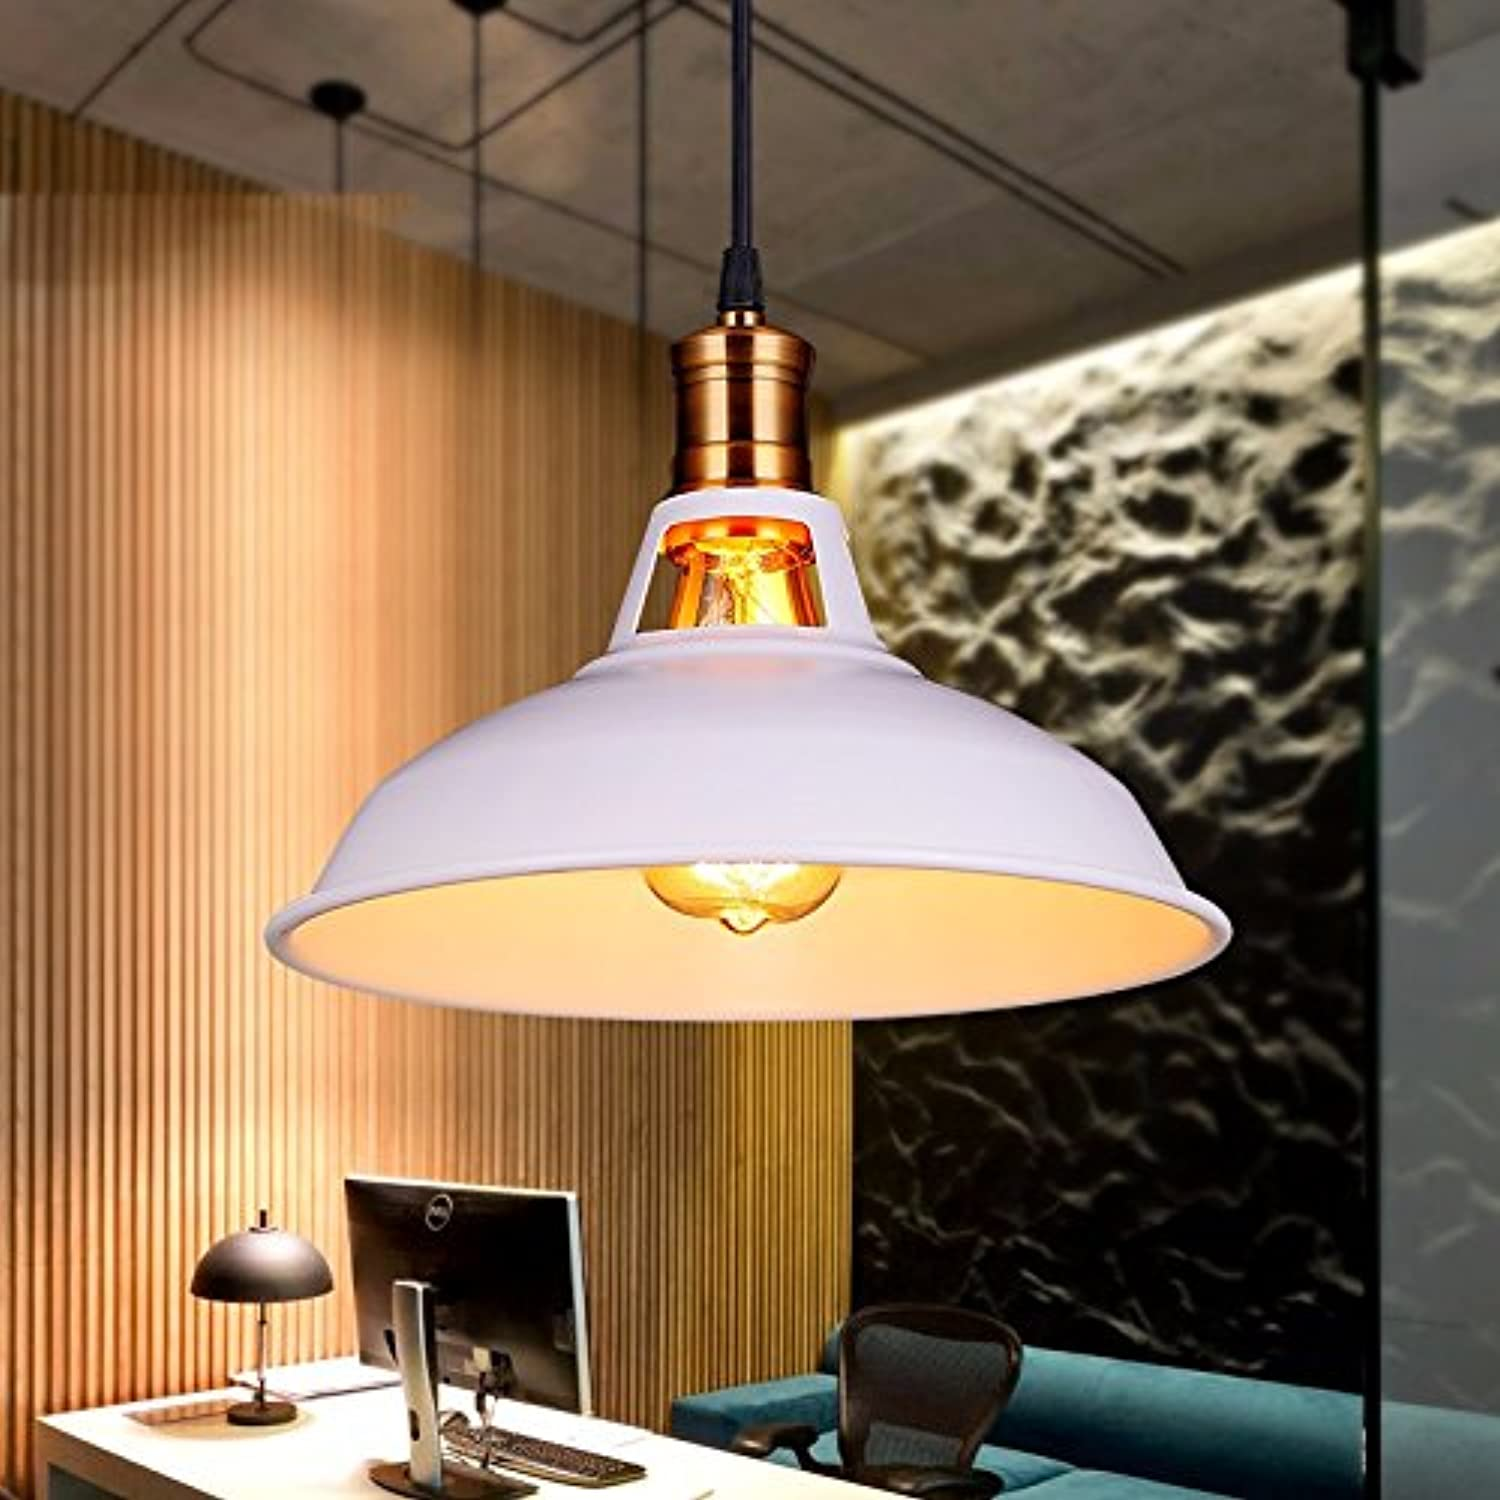 LighSCH Pendelleuchten Kronleuchter Das Restaurant Bar Lampe Industrial Air Single Wandmodell Deckel Loft Retro 28cm Gravur